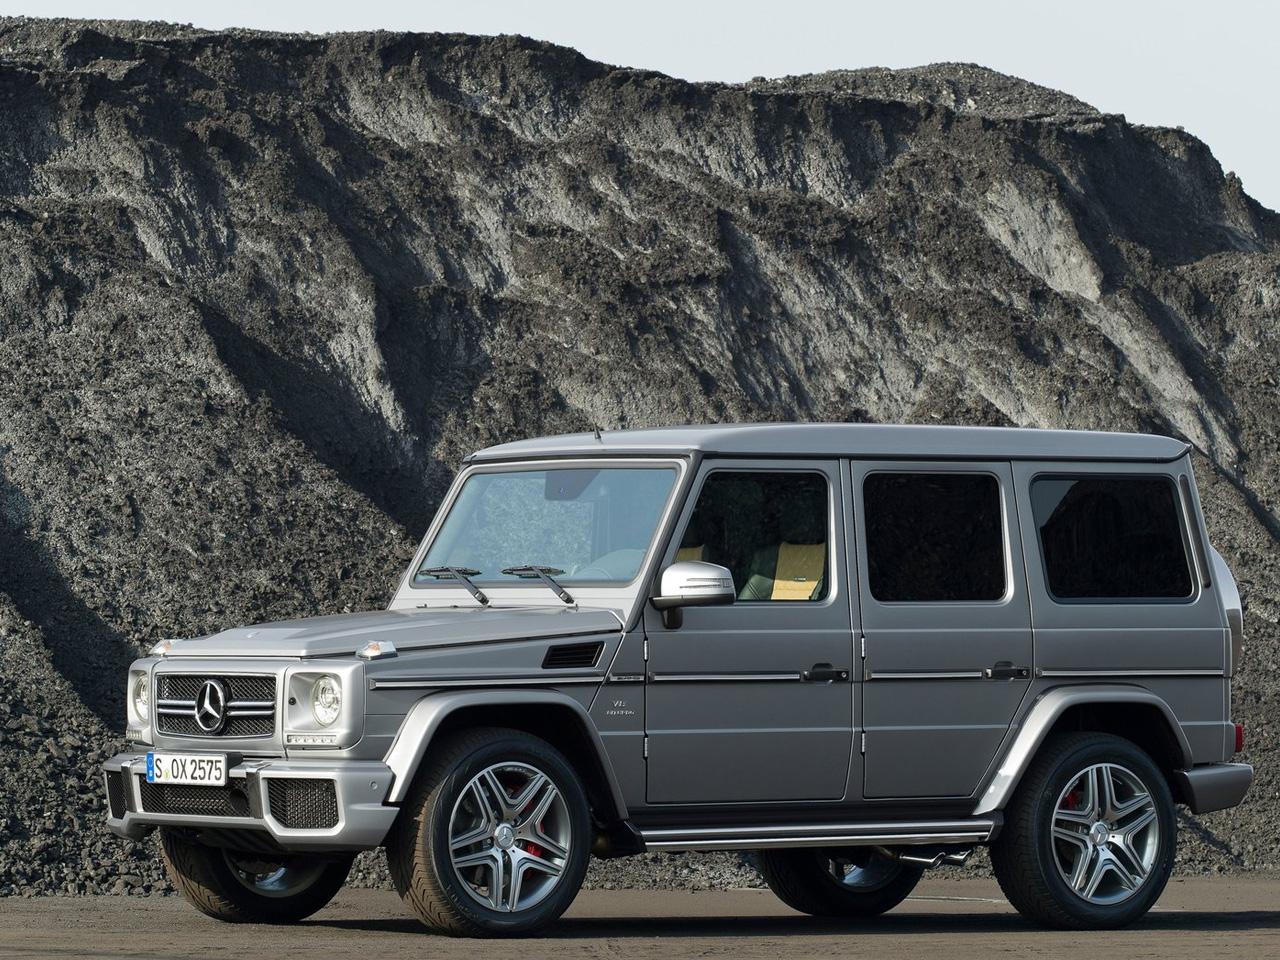 2013 mercedes benz g63 amg cars info for 2013 mercedes benz g63 amg